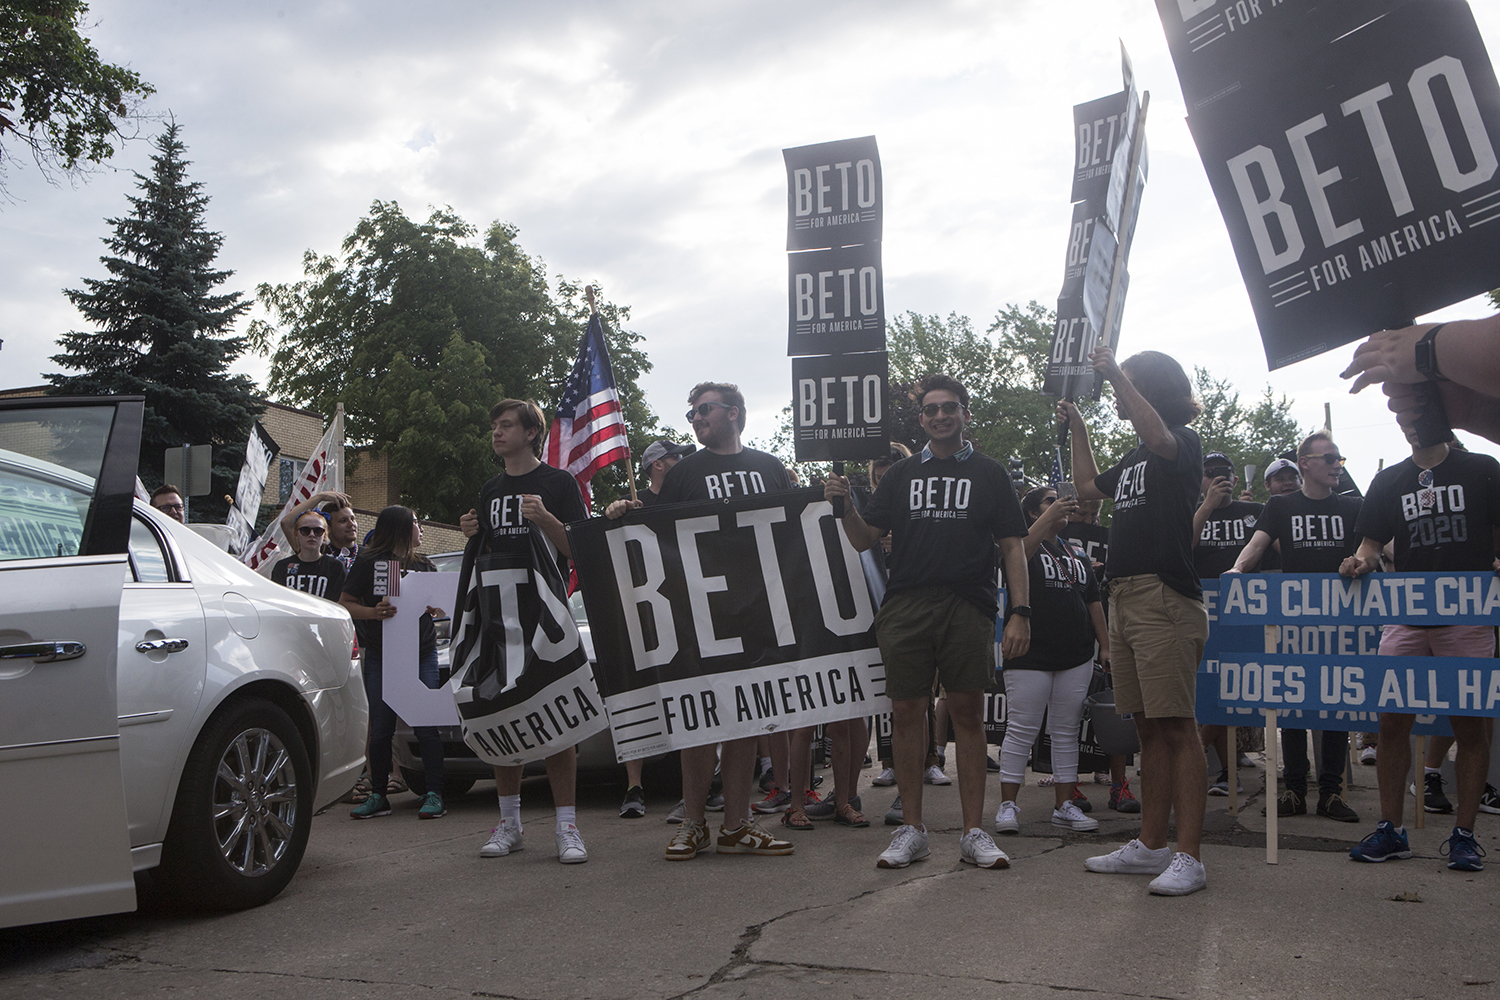 Beto+supporters+gather+during+a+4th+of+July+parade+in+Independence+Iowa+on+July+4%2C+2019.+Former+Vice+President+Joe+Biden%2C+former+Congressmen+Beto+O%27Rourke%2C+and+Mayor+of+New+York+City+Bill+de+Blasio+were+in+attendance.+This+is+the+159th+4th+of+July+parade+in+Independence.